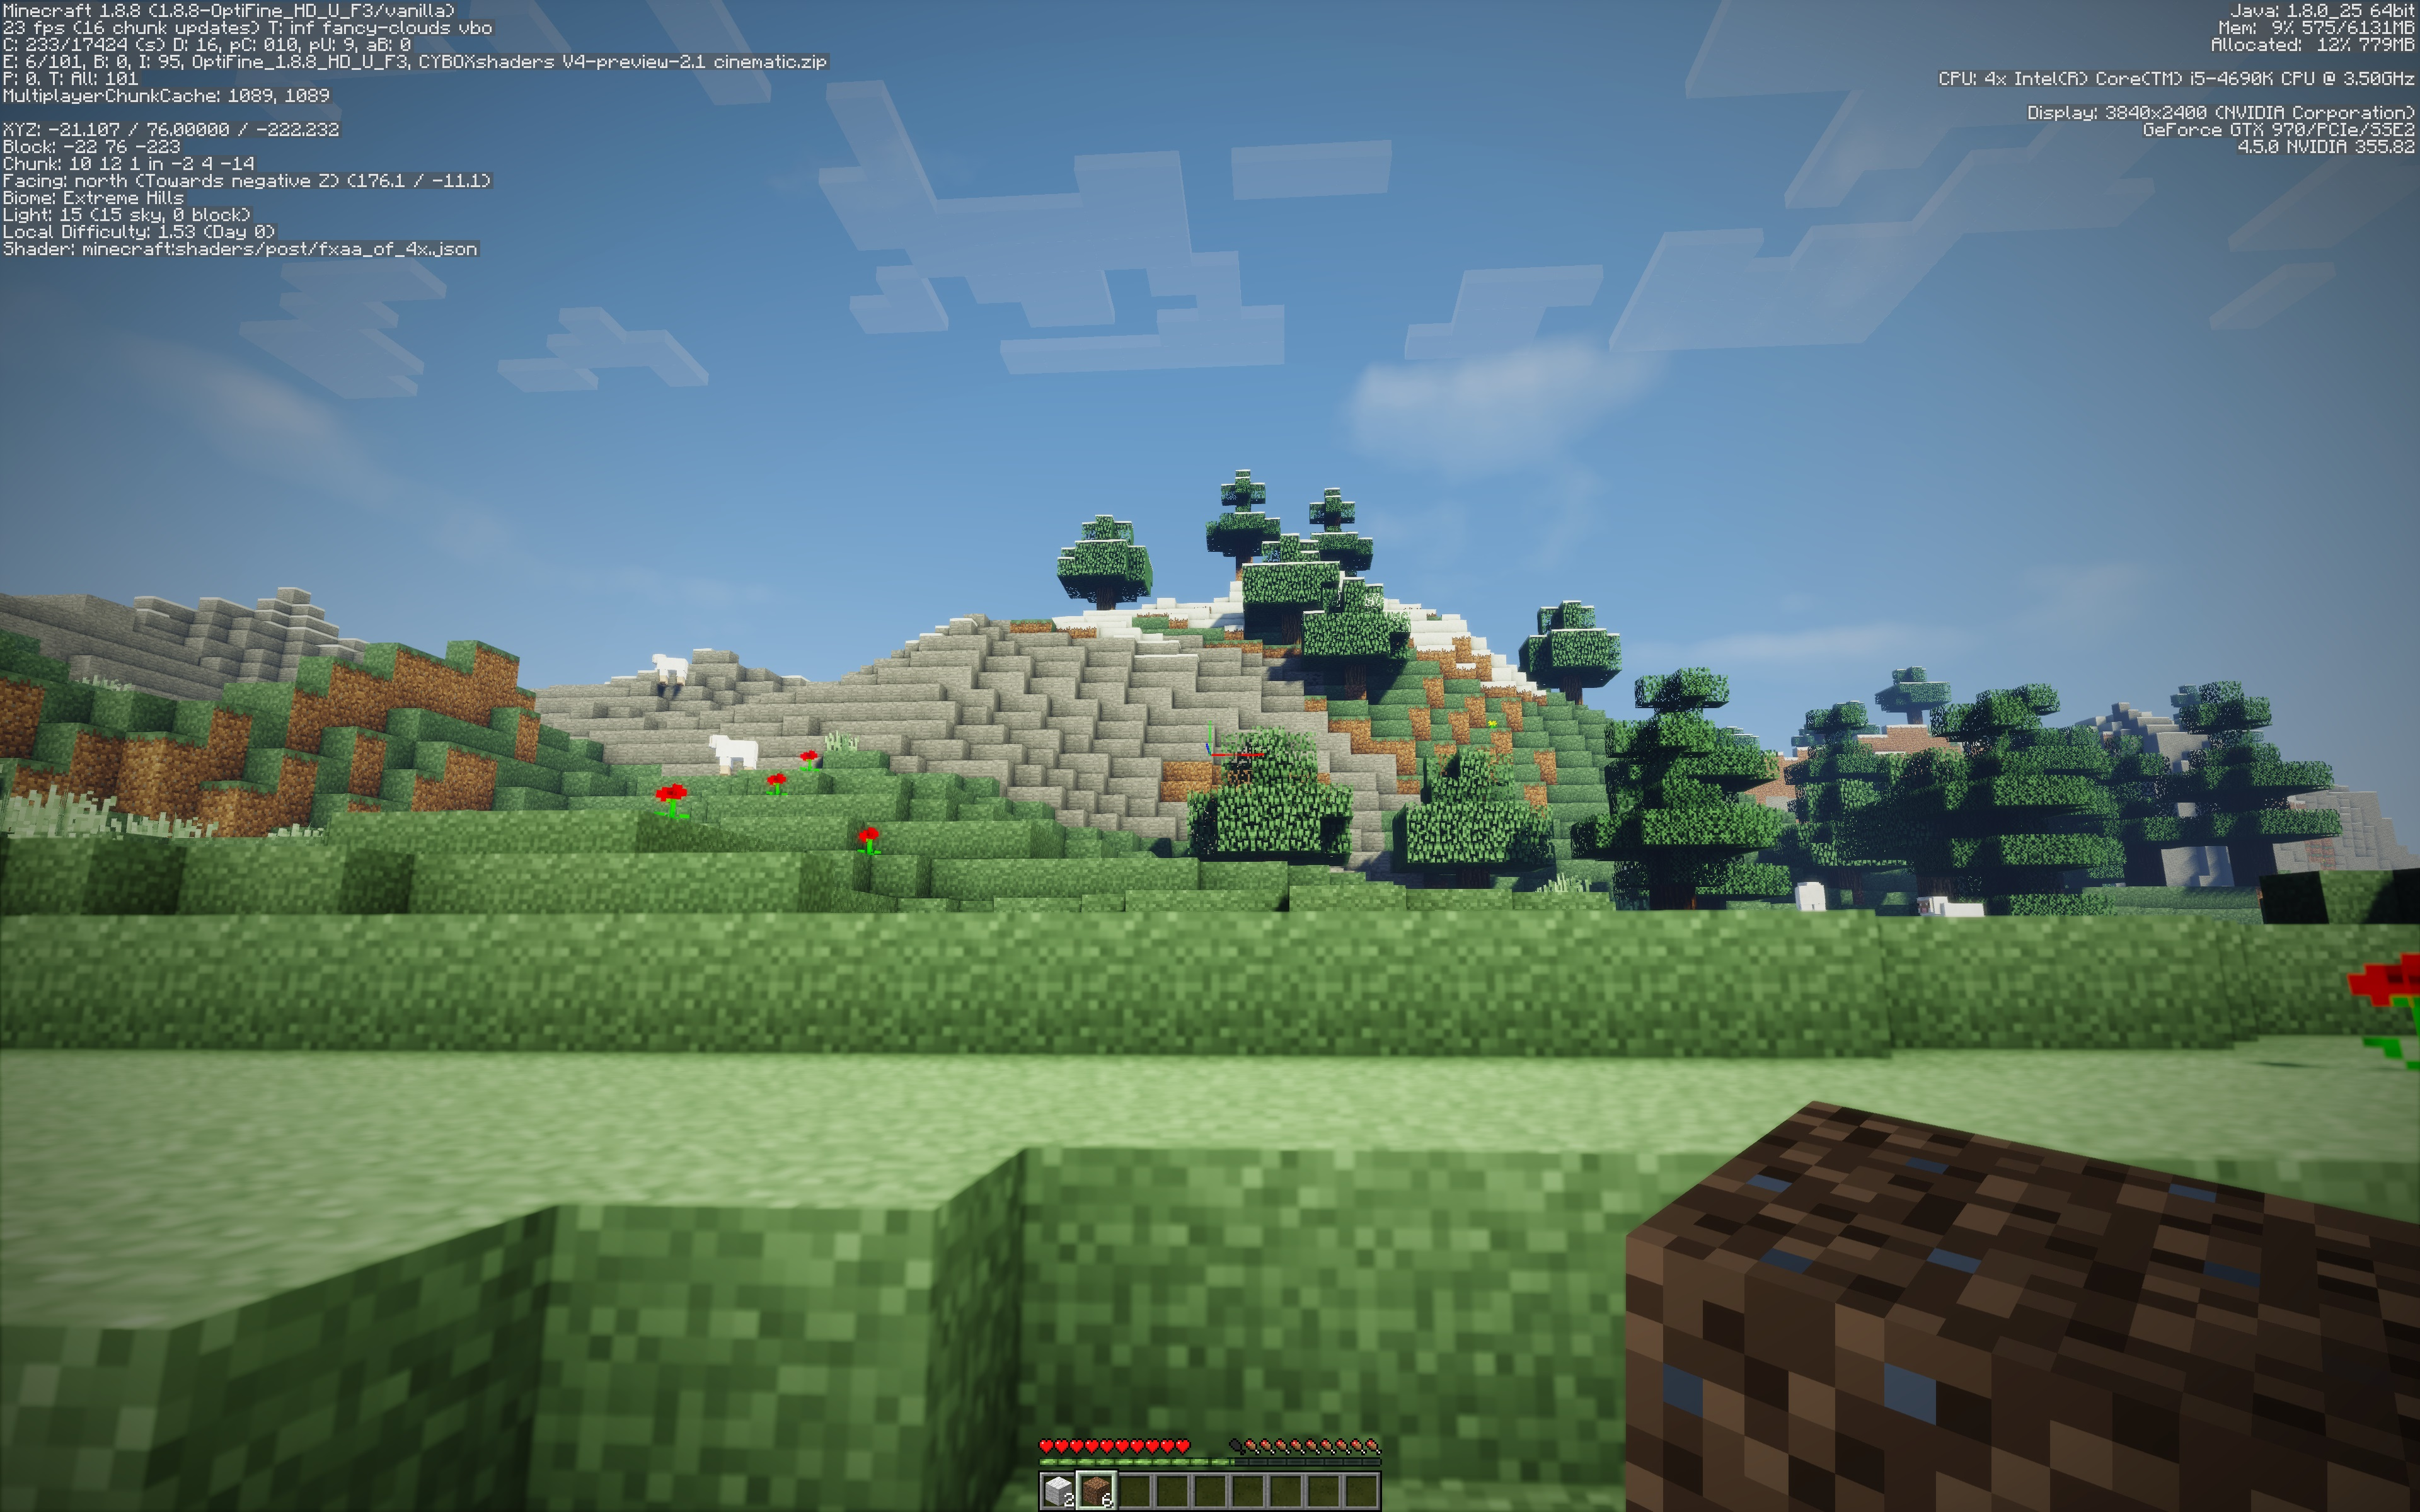 Have you ever wondered what Minecraft would look like in 4K?